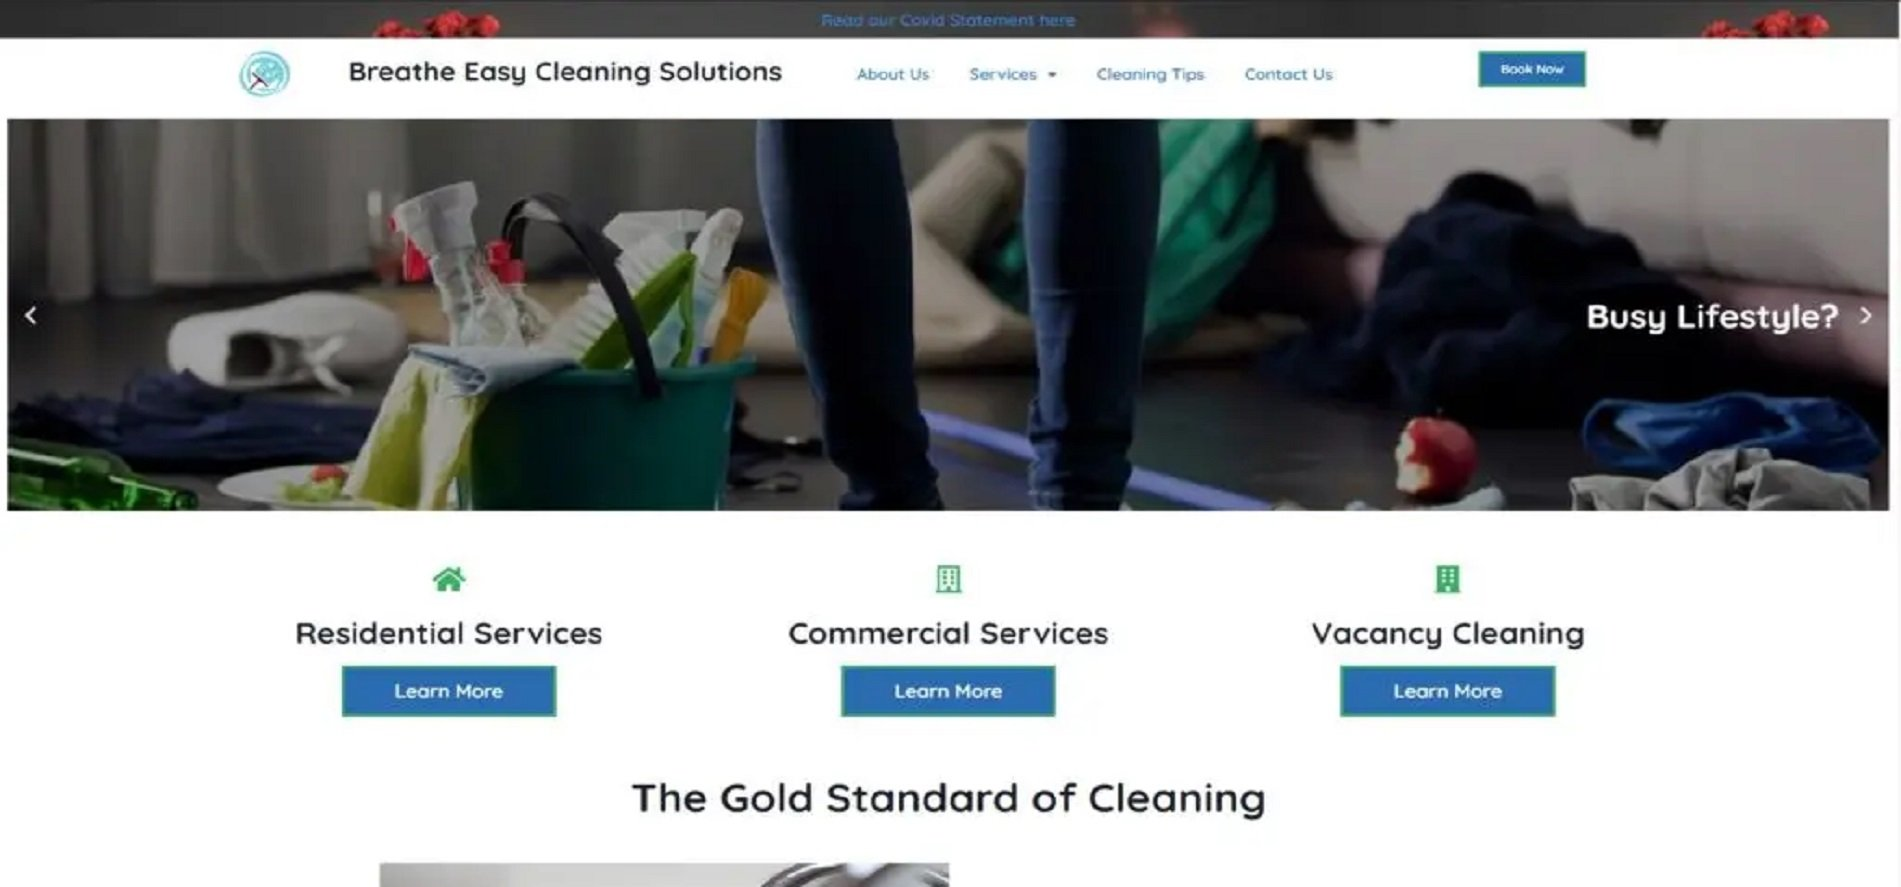 breathe easy cleaning solutions website